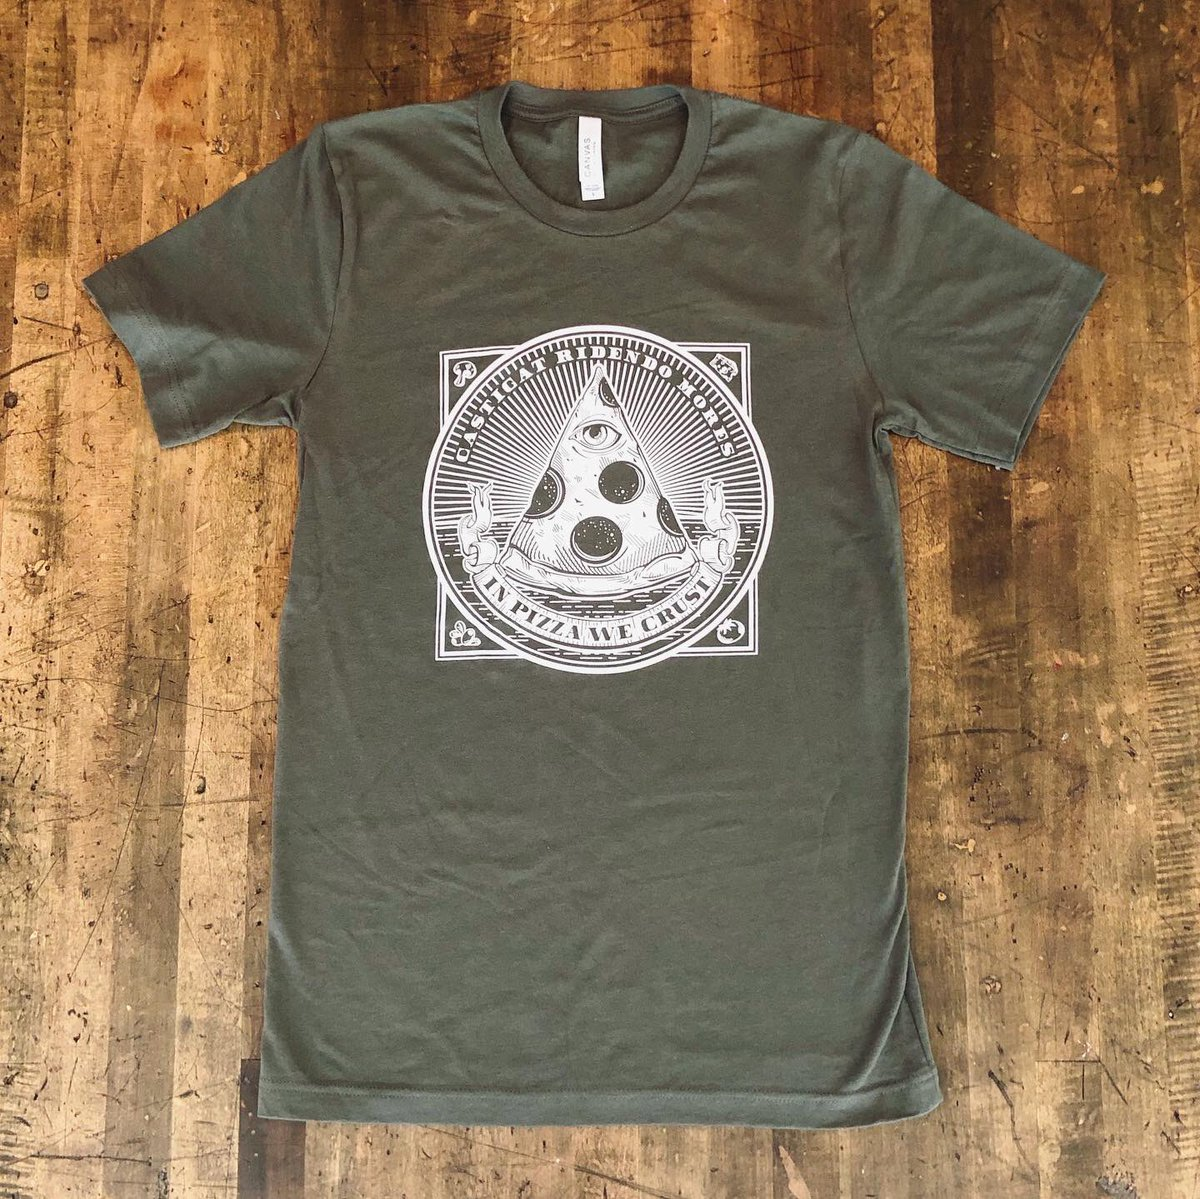 My apocalypse wardrobe - Grab yours in our shop!  #inpizzawecrust #pizzalover<br>http://pic.twitter.com/ZtgXsiJQWp